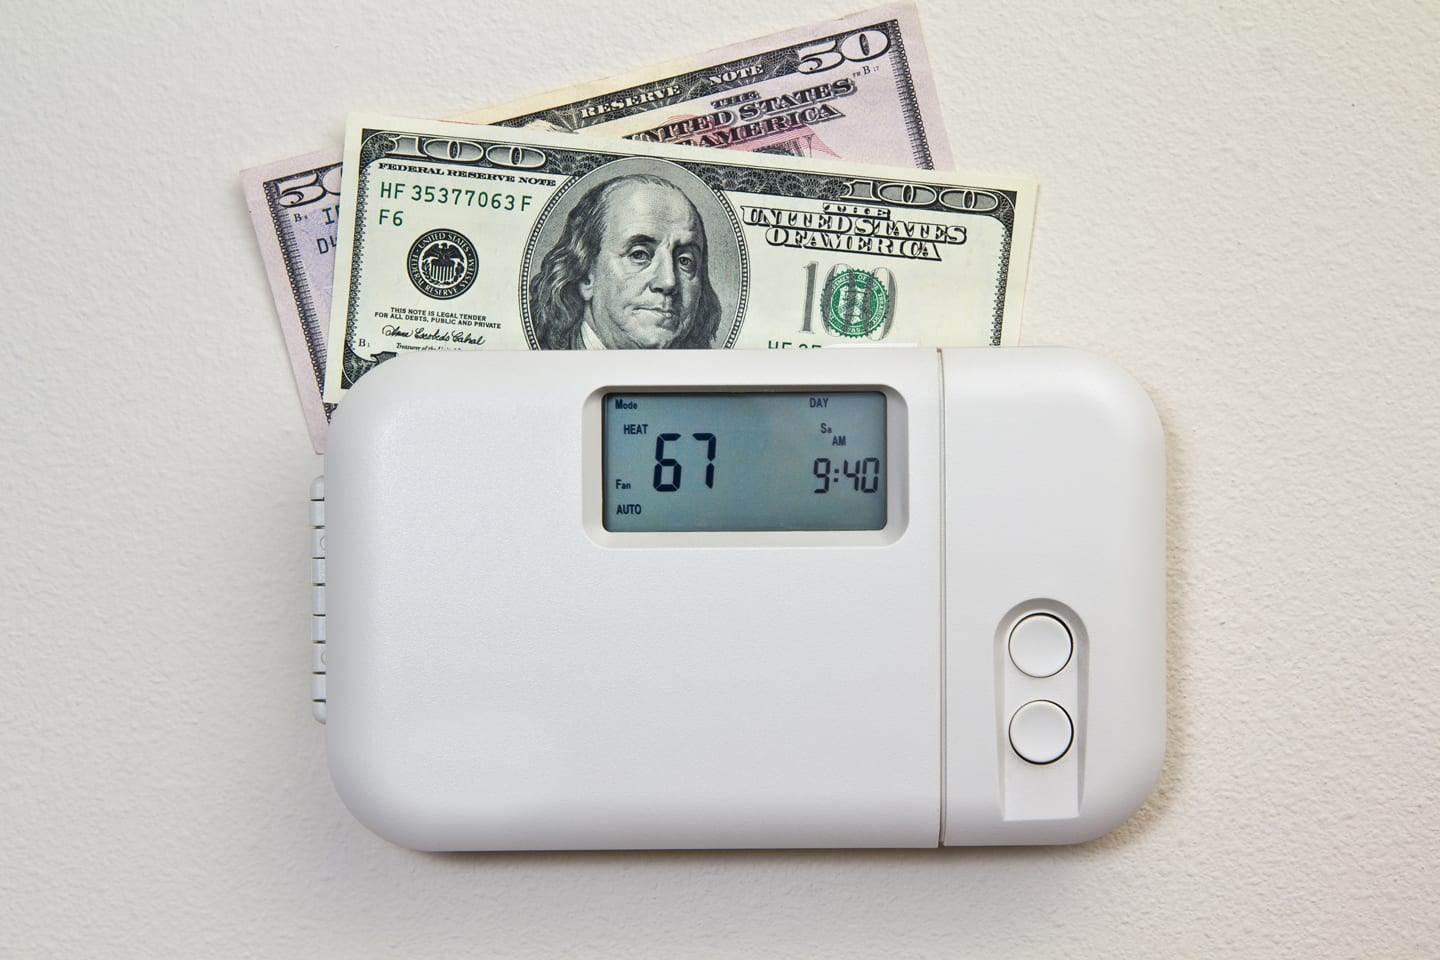 thermostat settings for lower energy bills in Edwardsville Illinois